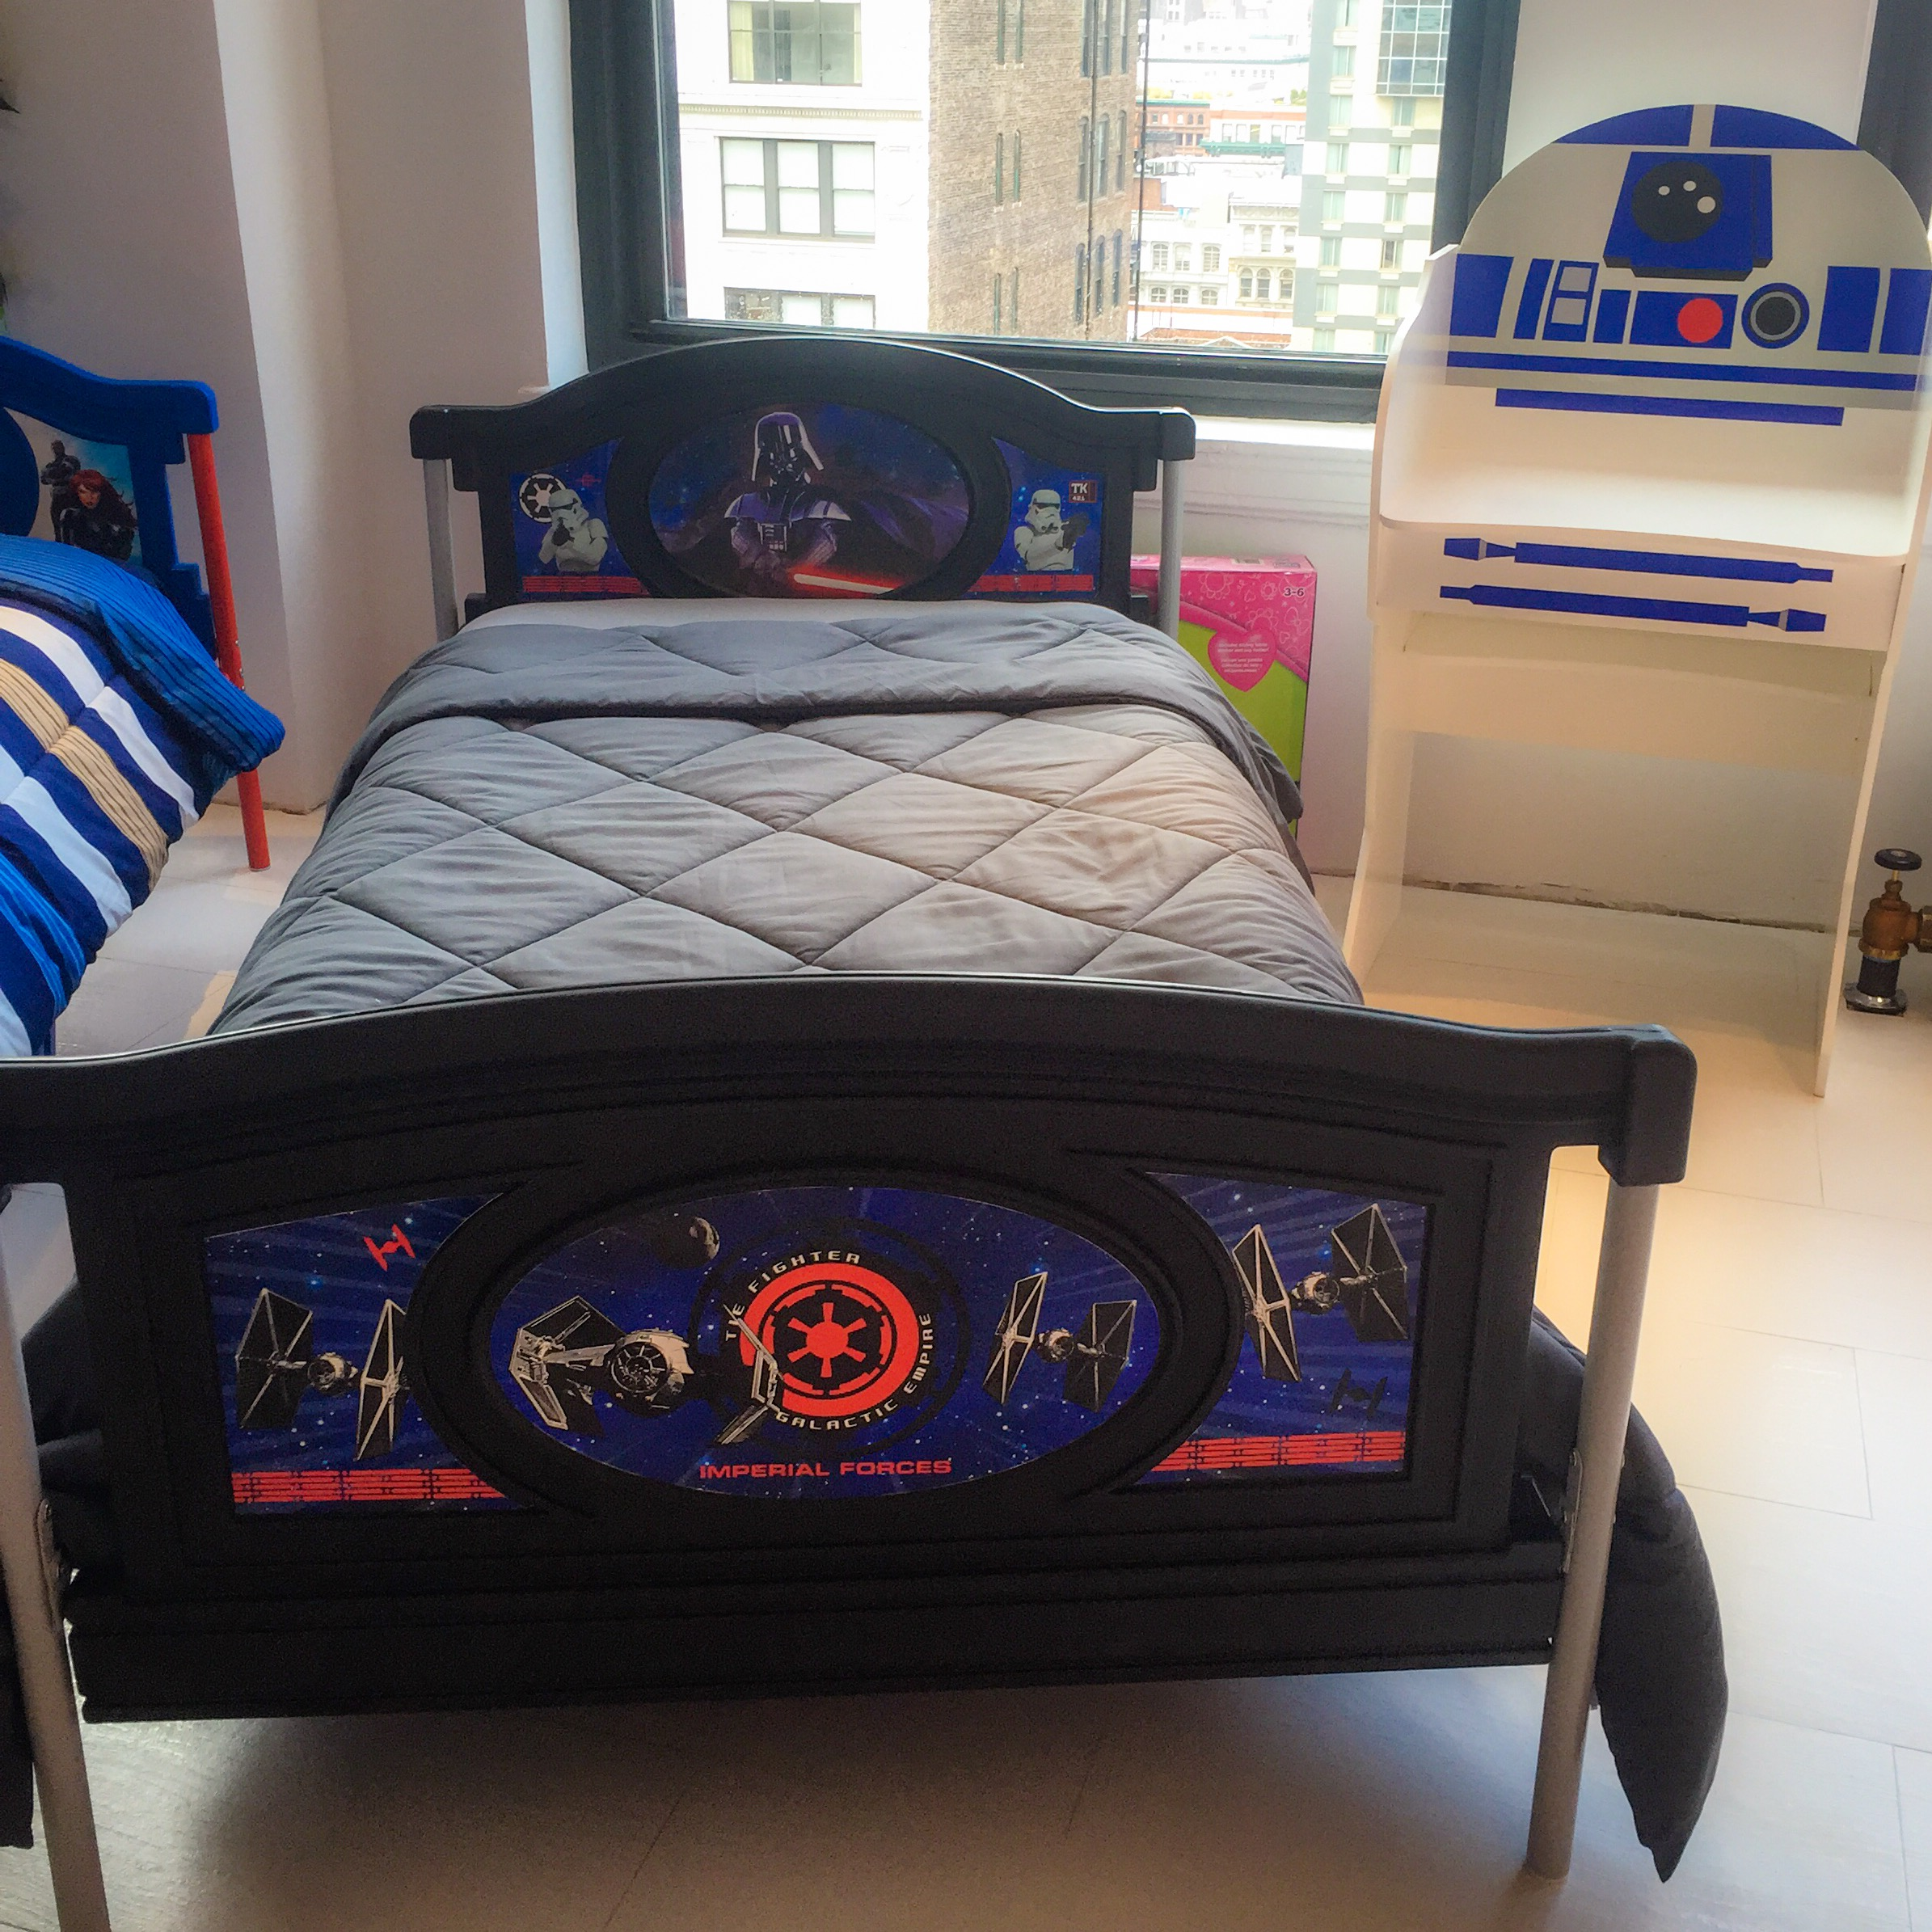 Star Wars Themed Bedroom Ideas Its Star Wars Day My Strange Family